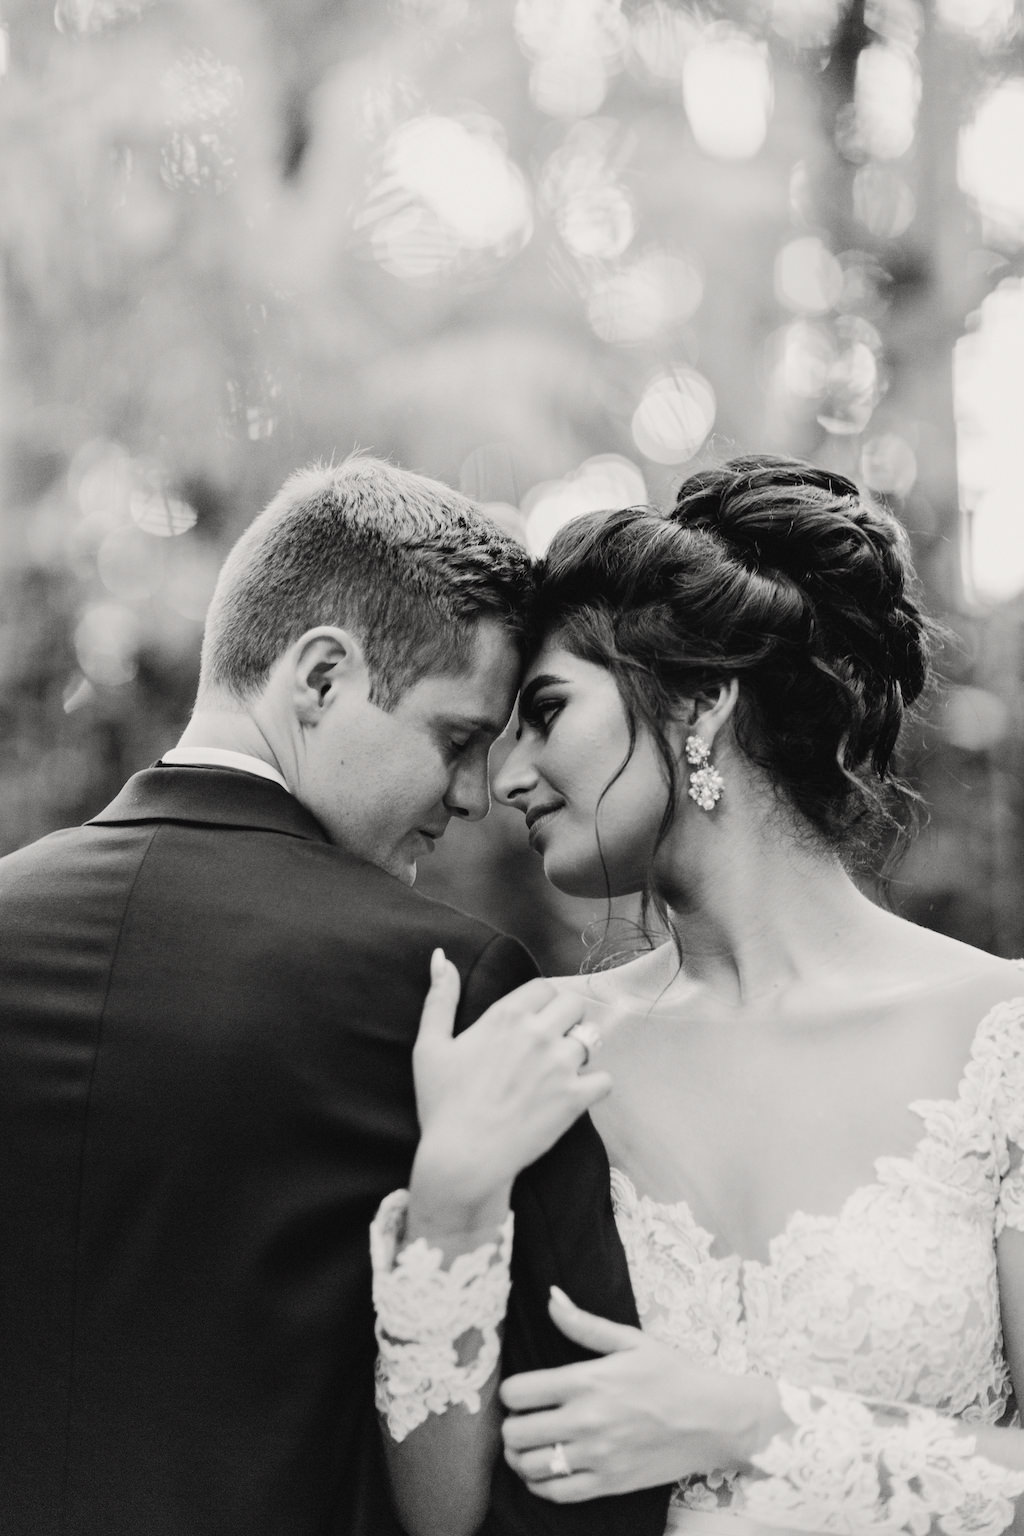 Intimate Bride and Groom Outdoor Wedding Portrait, Bride in A-Line Long Sleeve Illusion and Lace Wedding Dress, Groom in Black Tuxedo   St. Petersburg Venue The Sunken Gardens